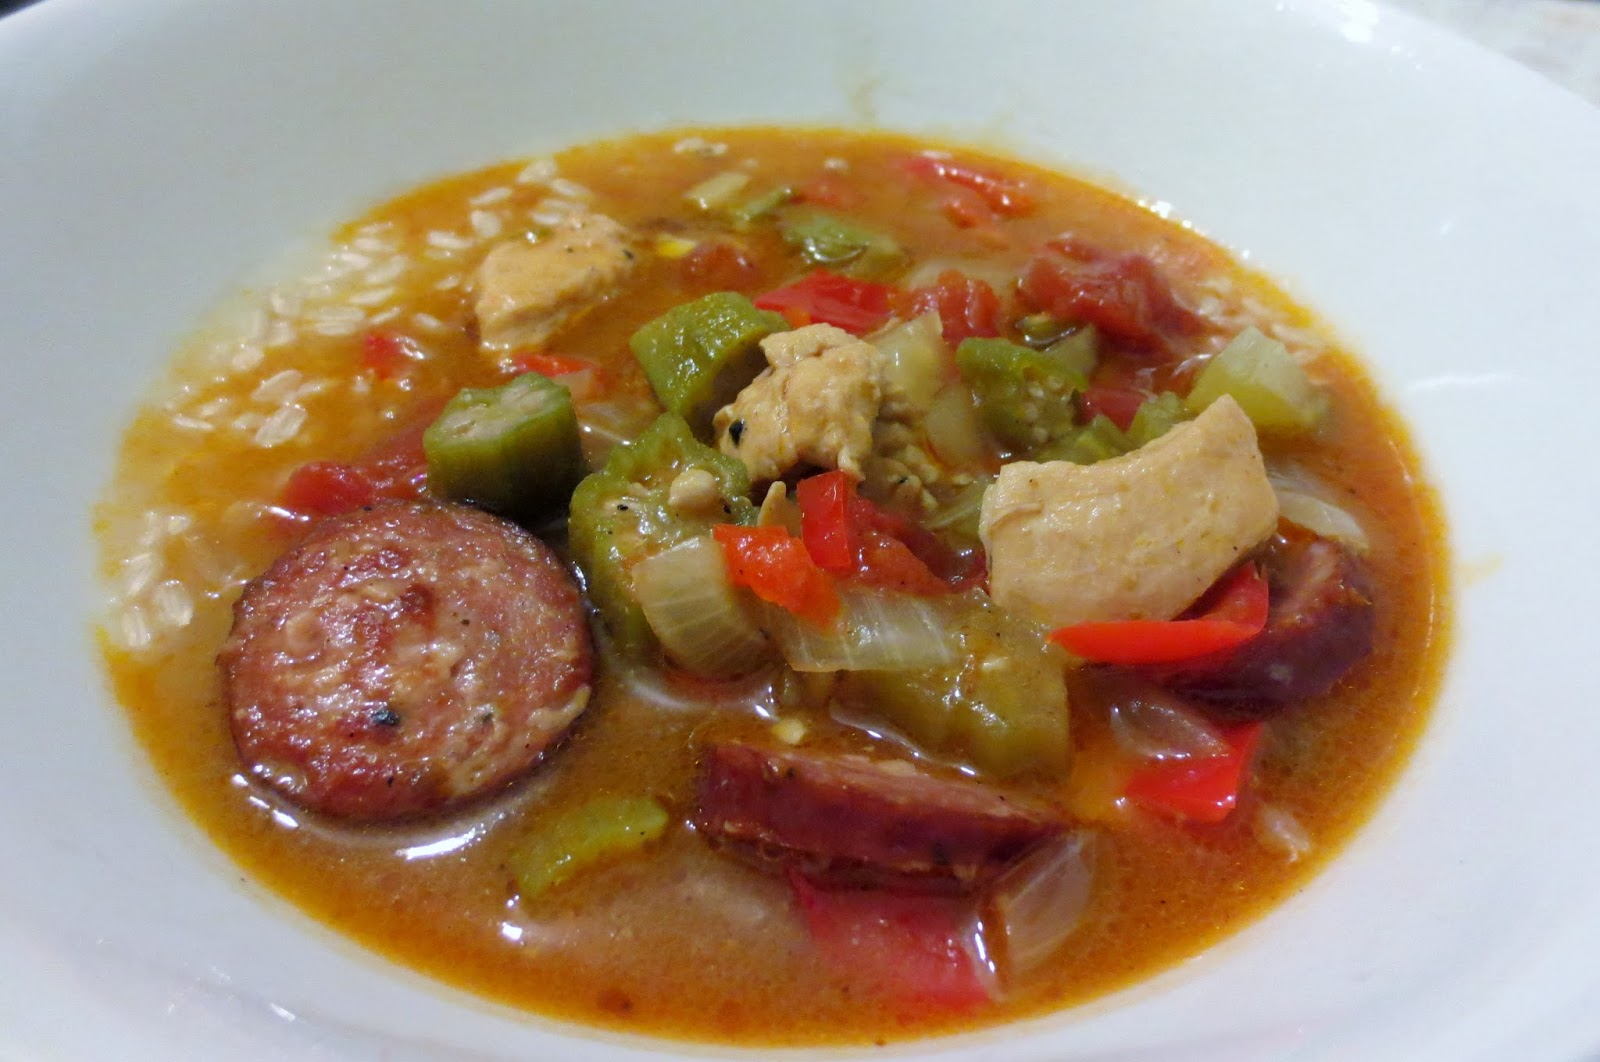 ... The Diary of a Food Enthusiast: Heartwarming Chicken and Sausage Gumbo